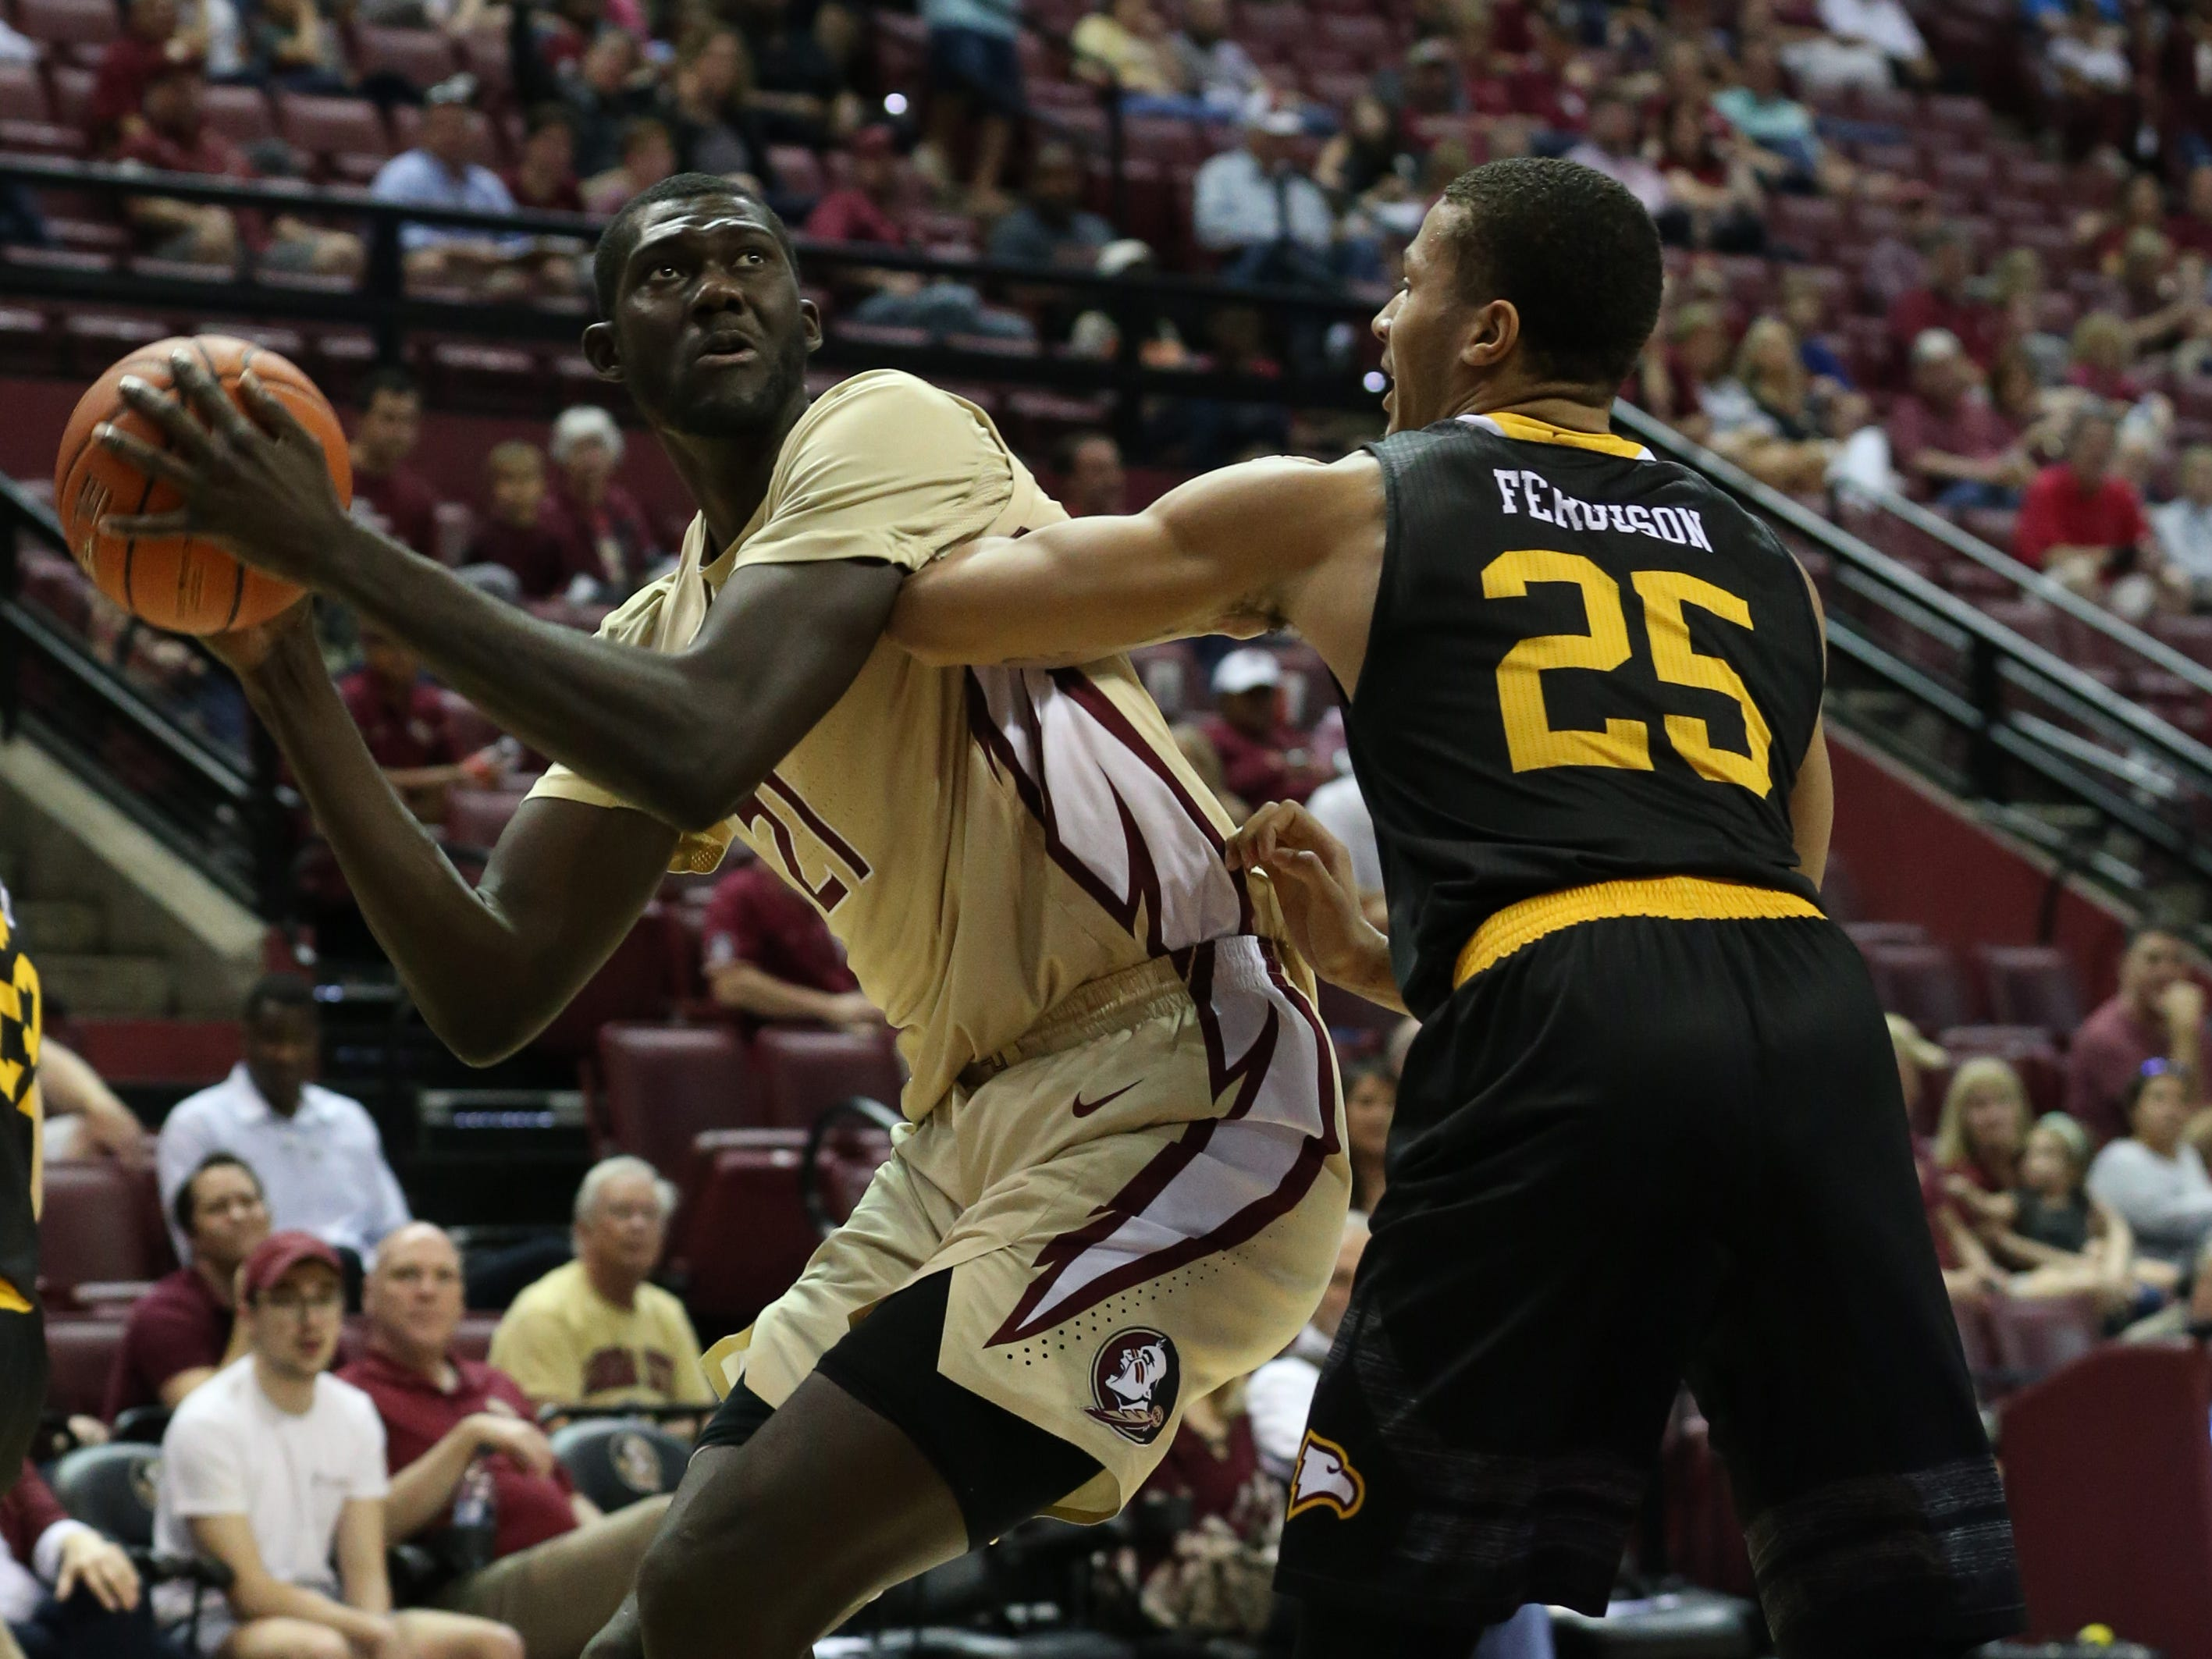 Florida State Seminoles center Christ Koumadje (21) looks over Winthrop Eagles forward Josh Ferguson (25) towards the hoop. The Florida State Seminoles host the Winthrop Eagles for men's basketball at the Tucker Civic Center, Tuesday, Jan. 1, 2019.